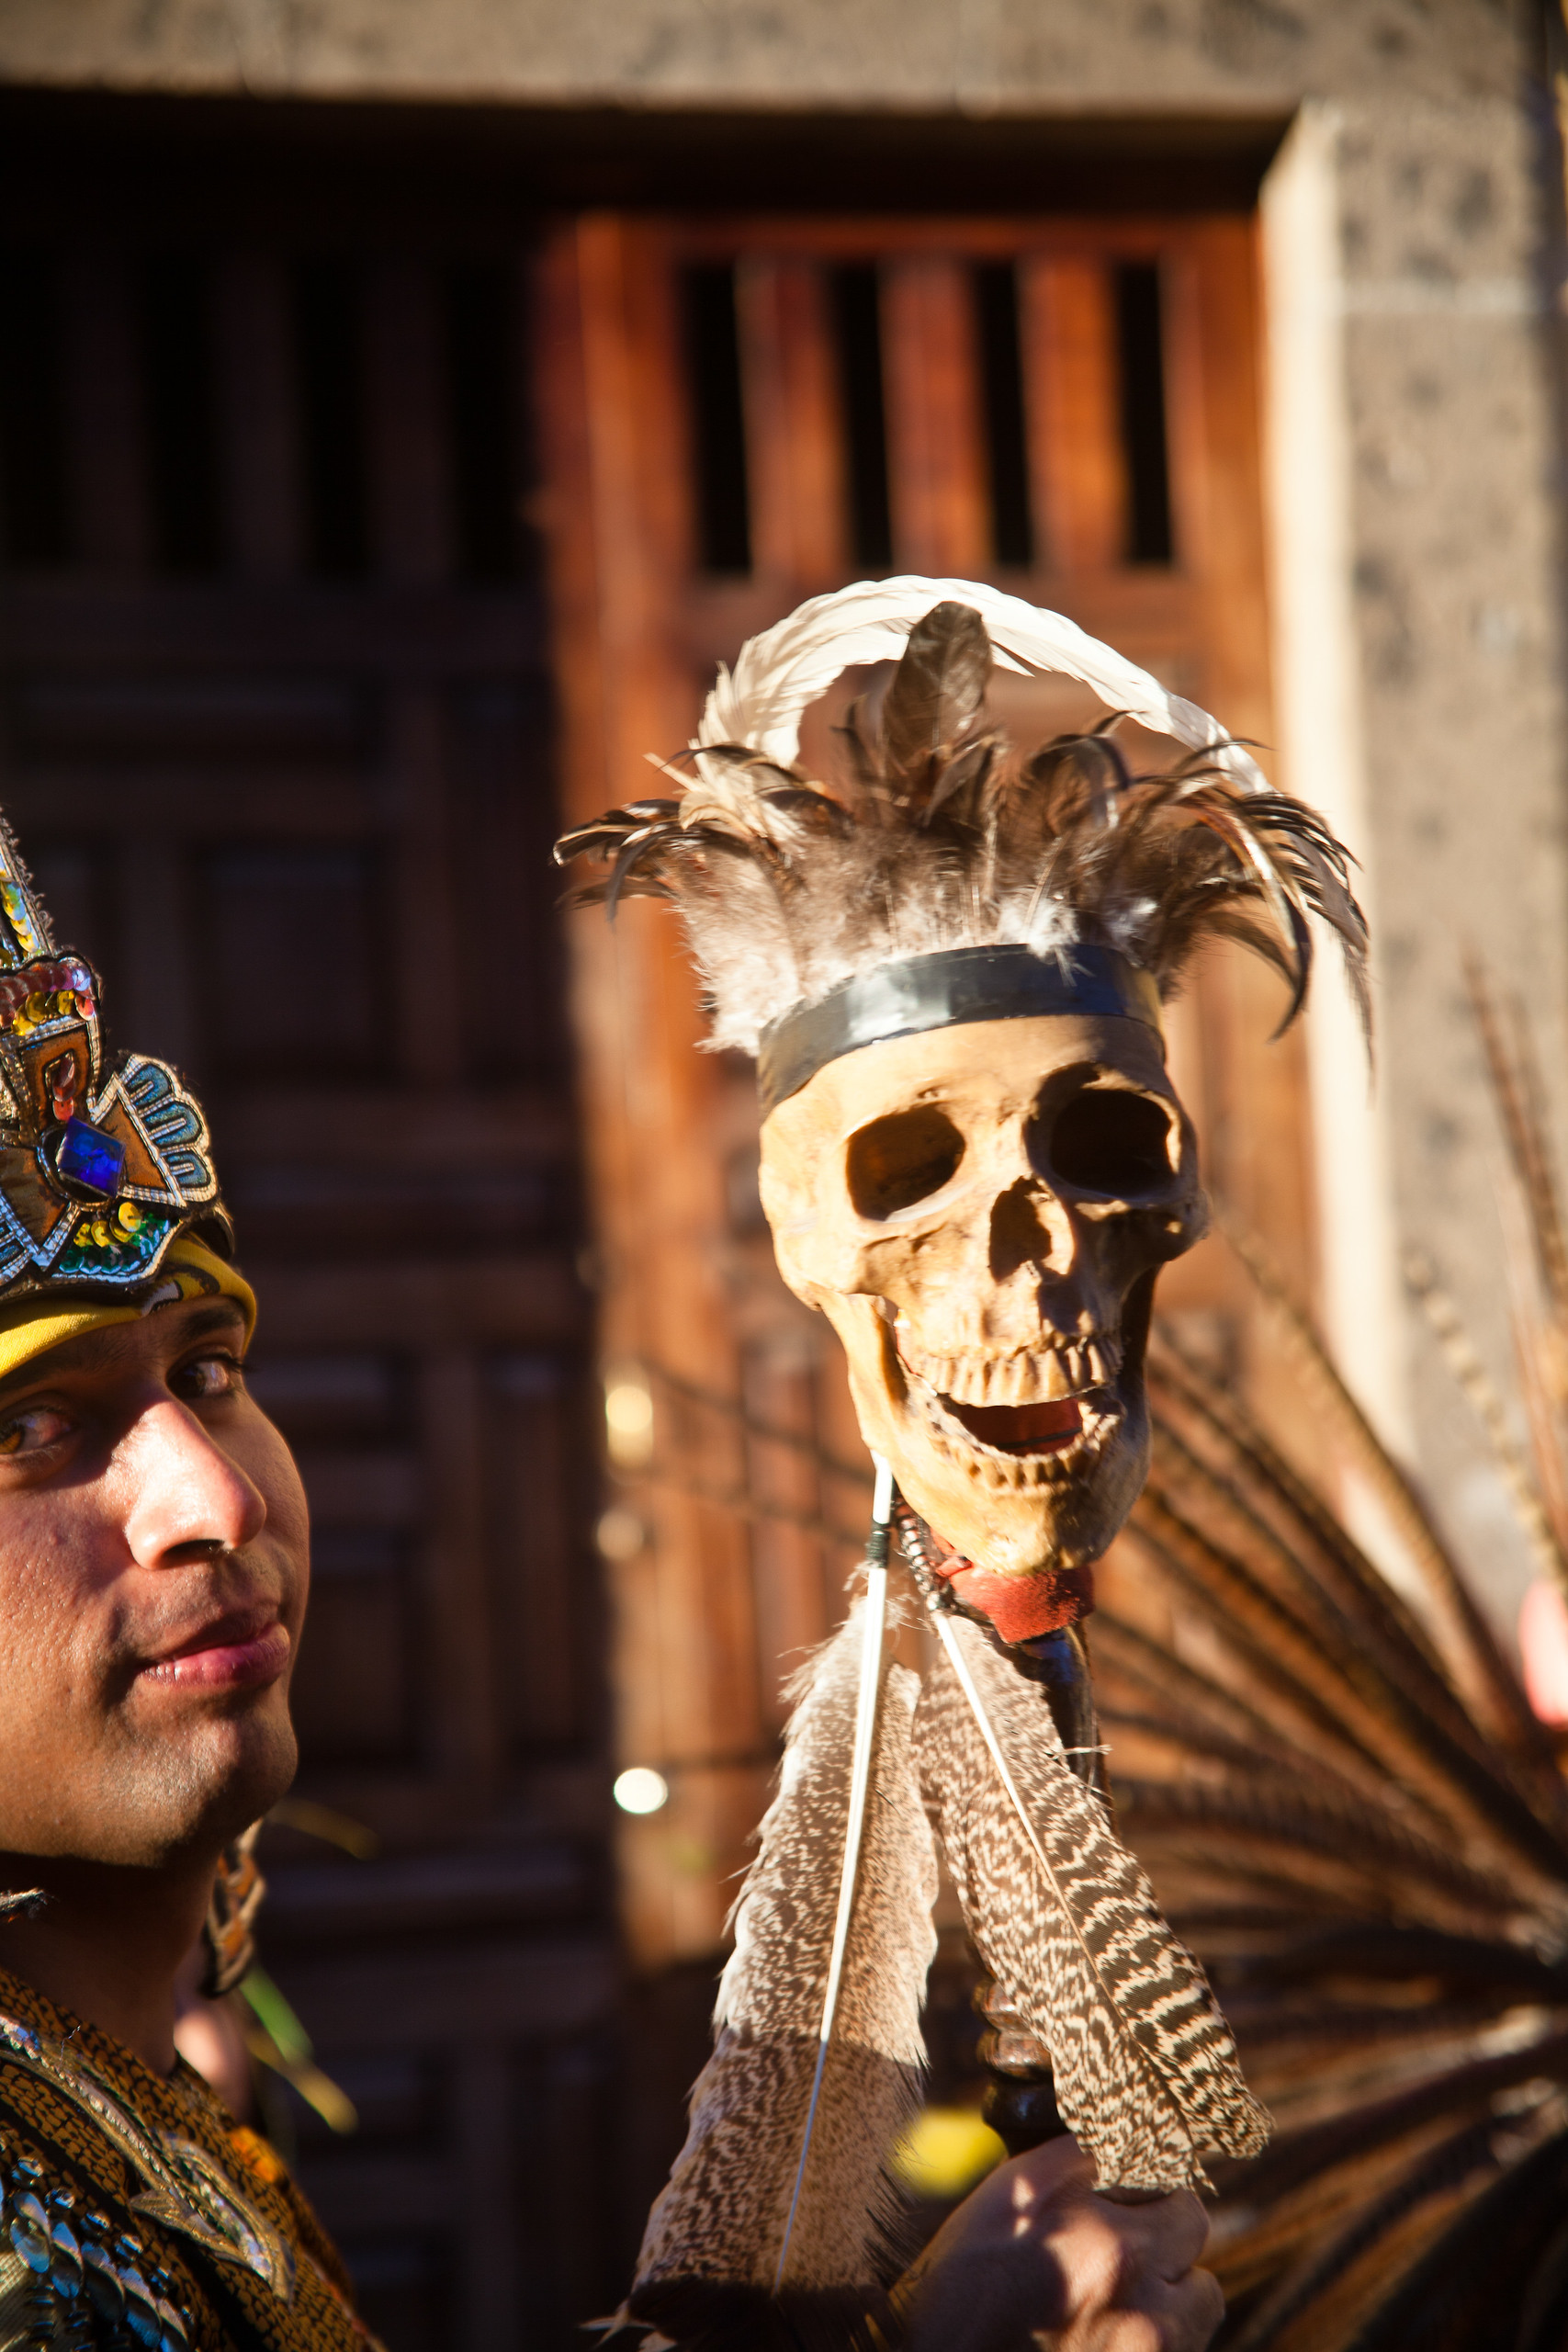 At the Day of the Dead festival in San Miguel de Allende